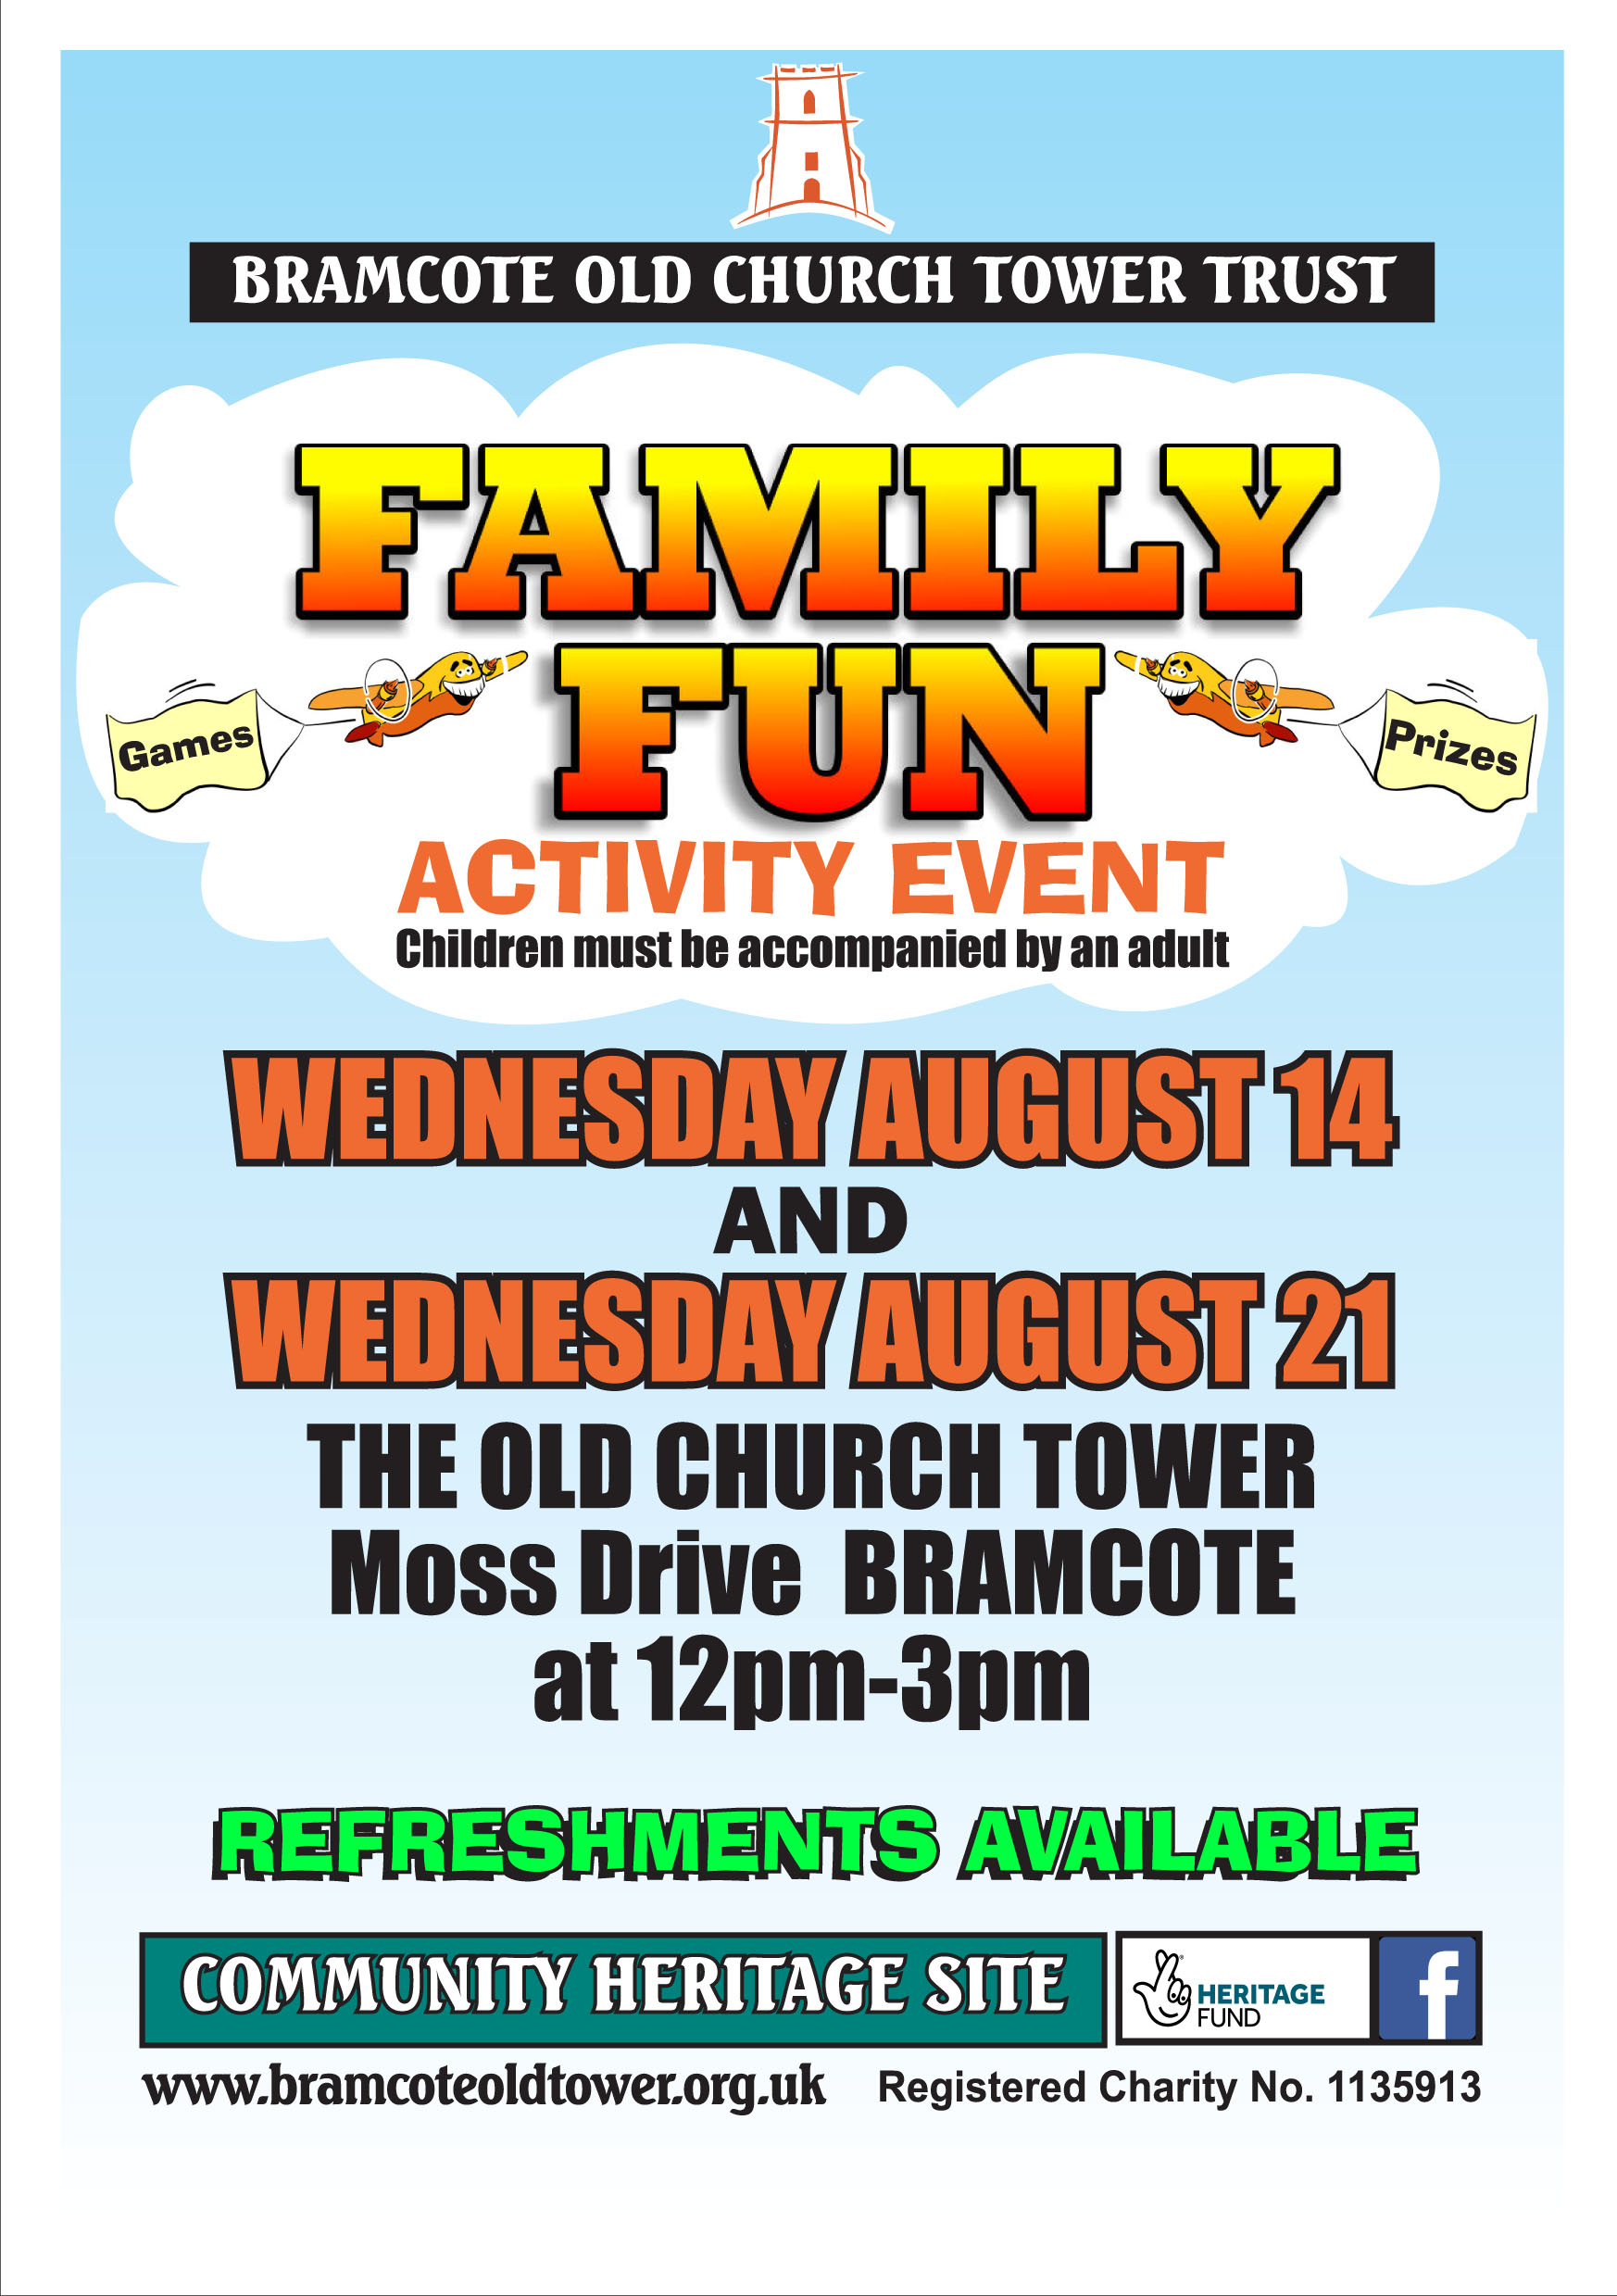 Bramcote Old Church Tower Trust FAMILY FUN DAY event.